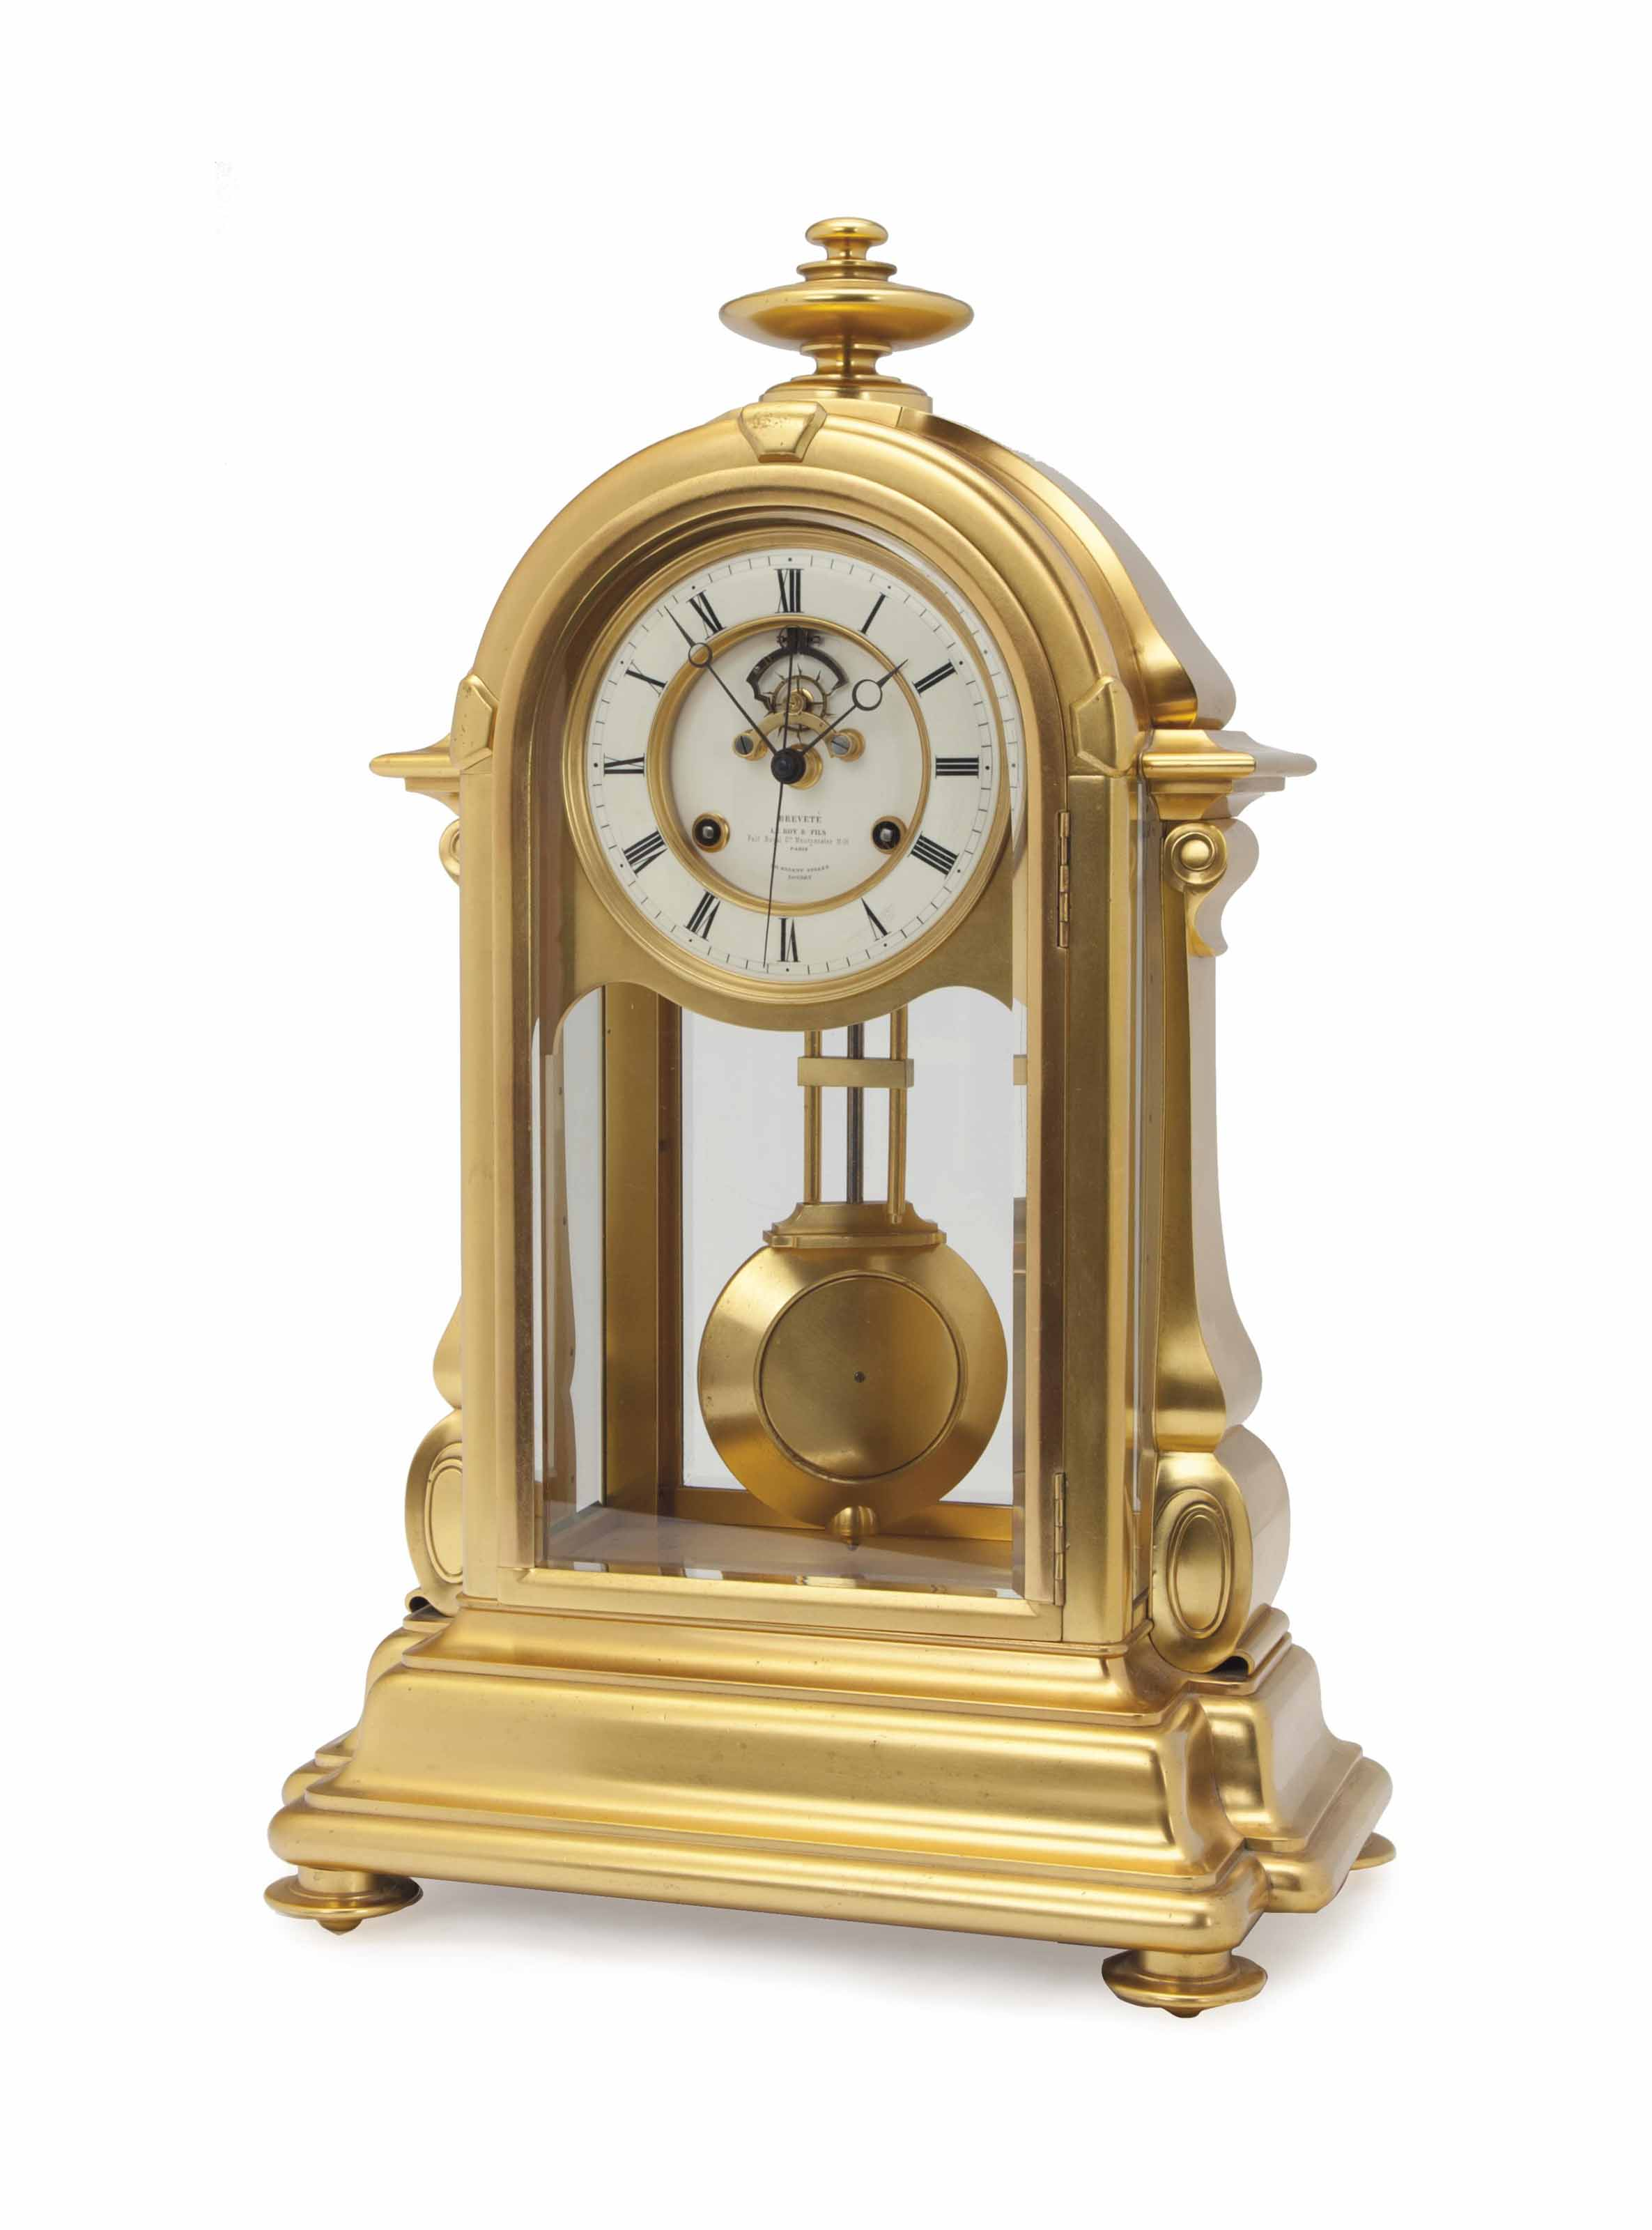 A GILT-BRONZE MANTLE CLOCK,